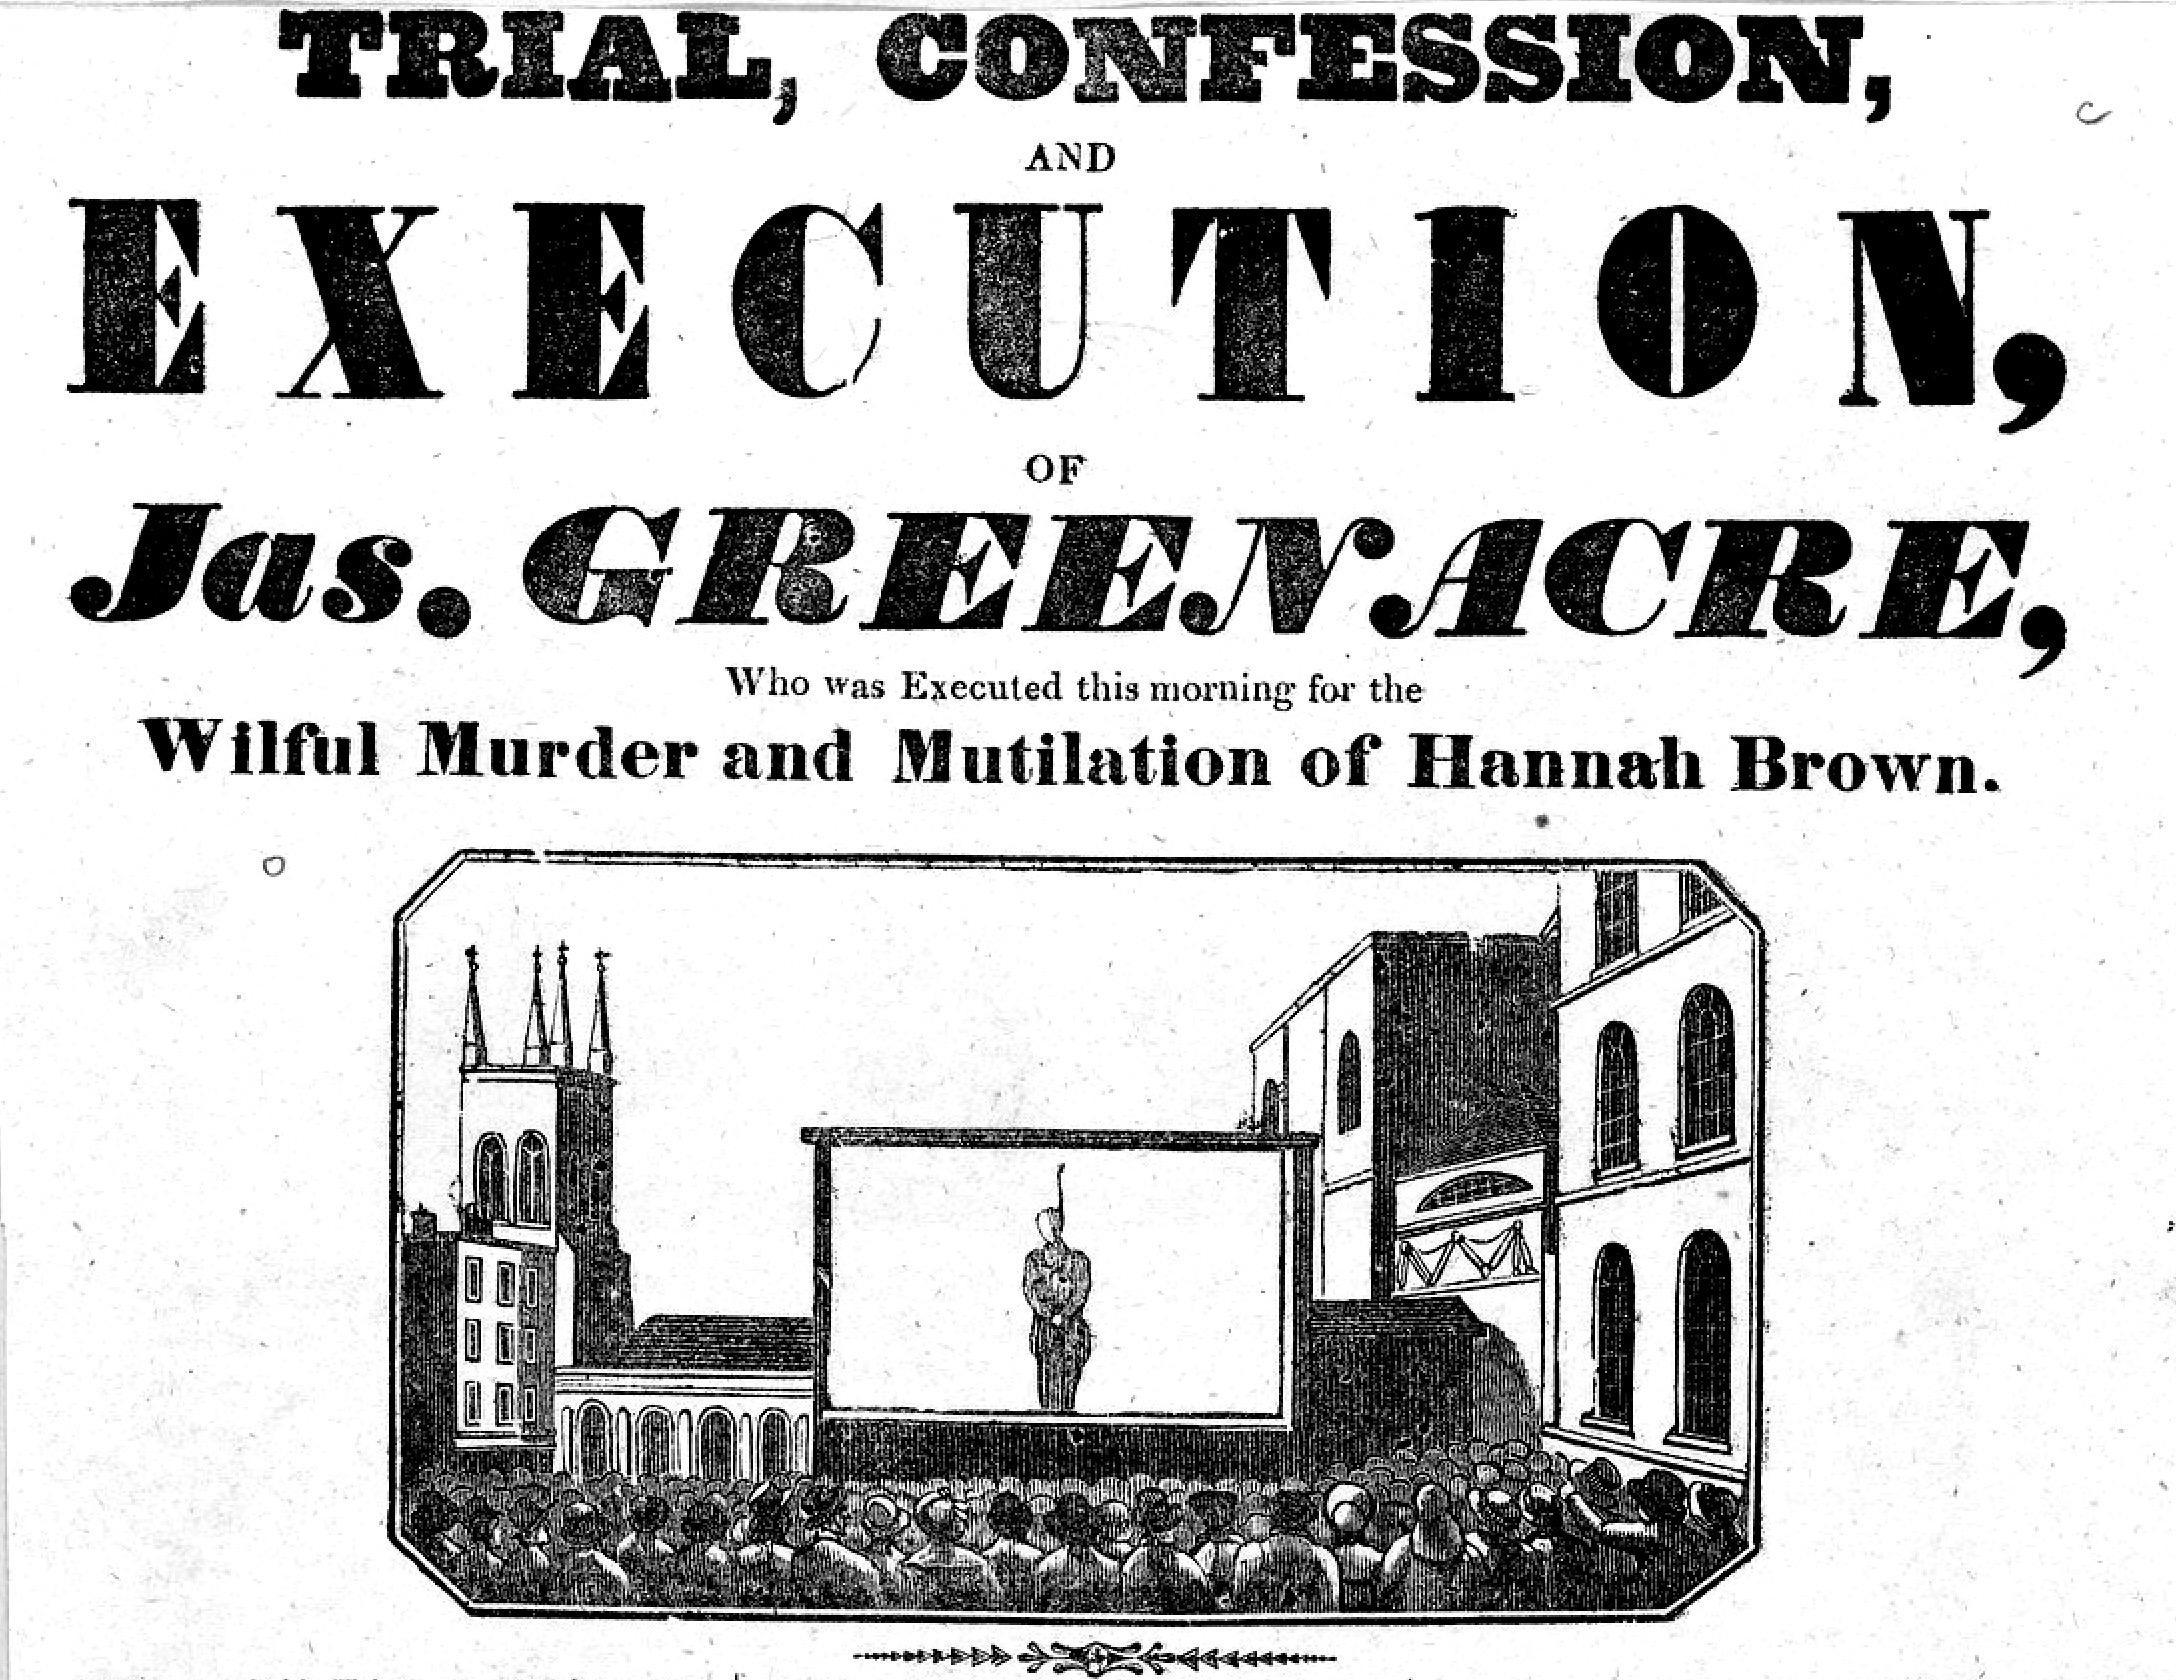 The execution of James Greenacre